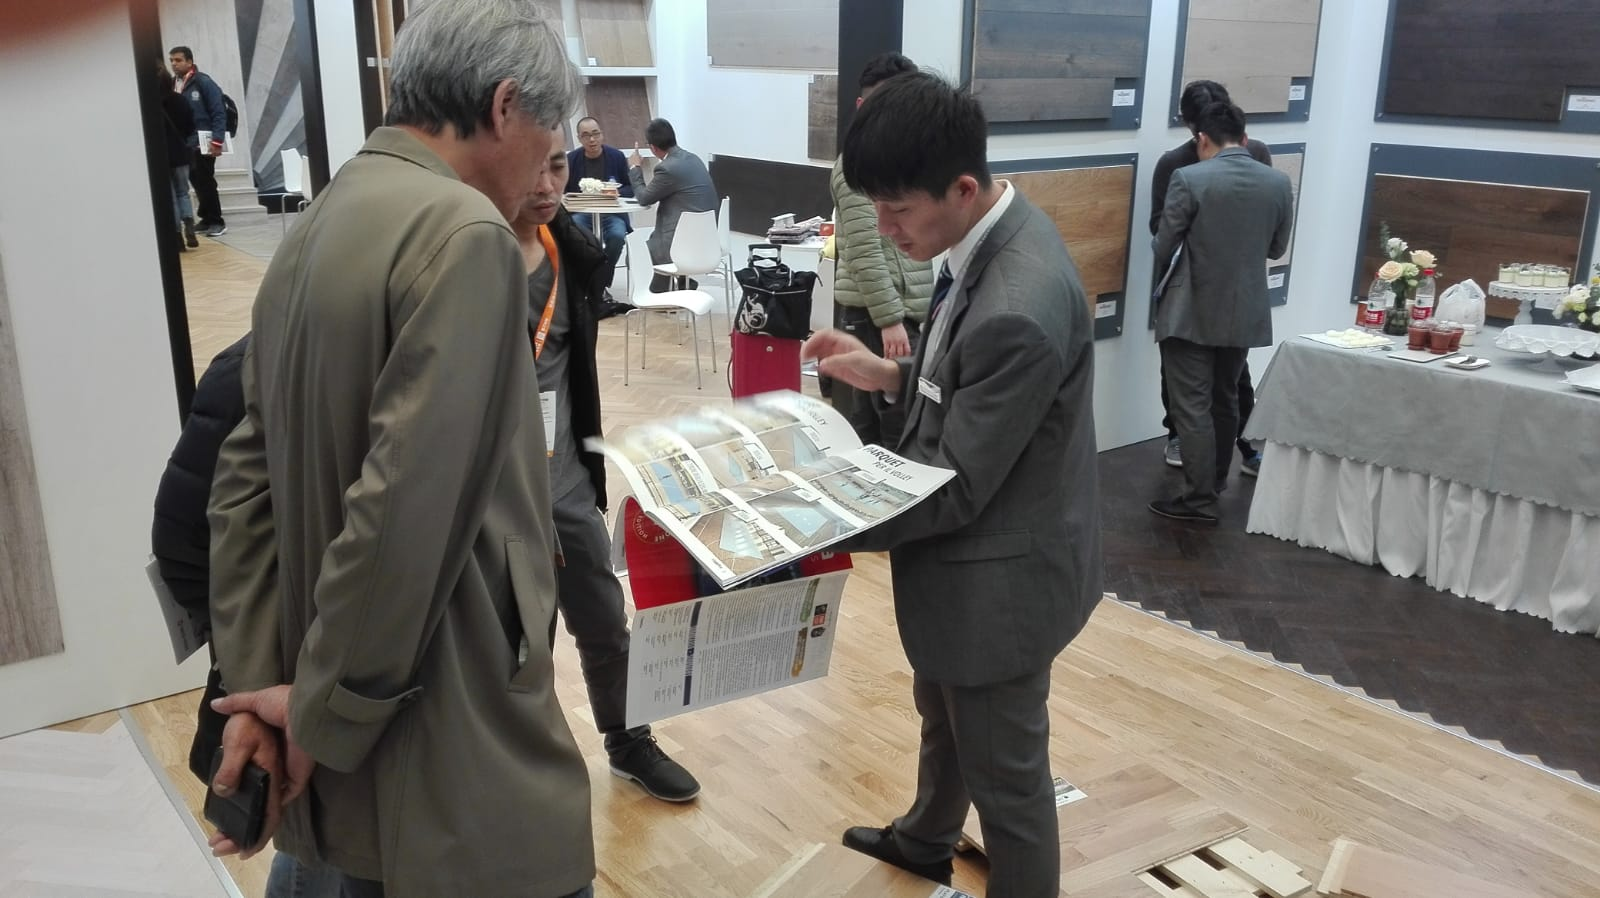 Some customers browse through the new Dalla Riva catalog